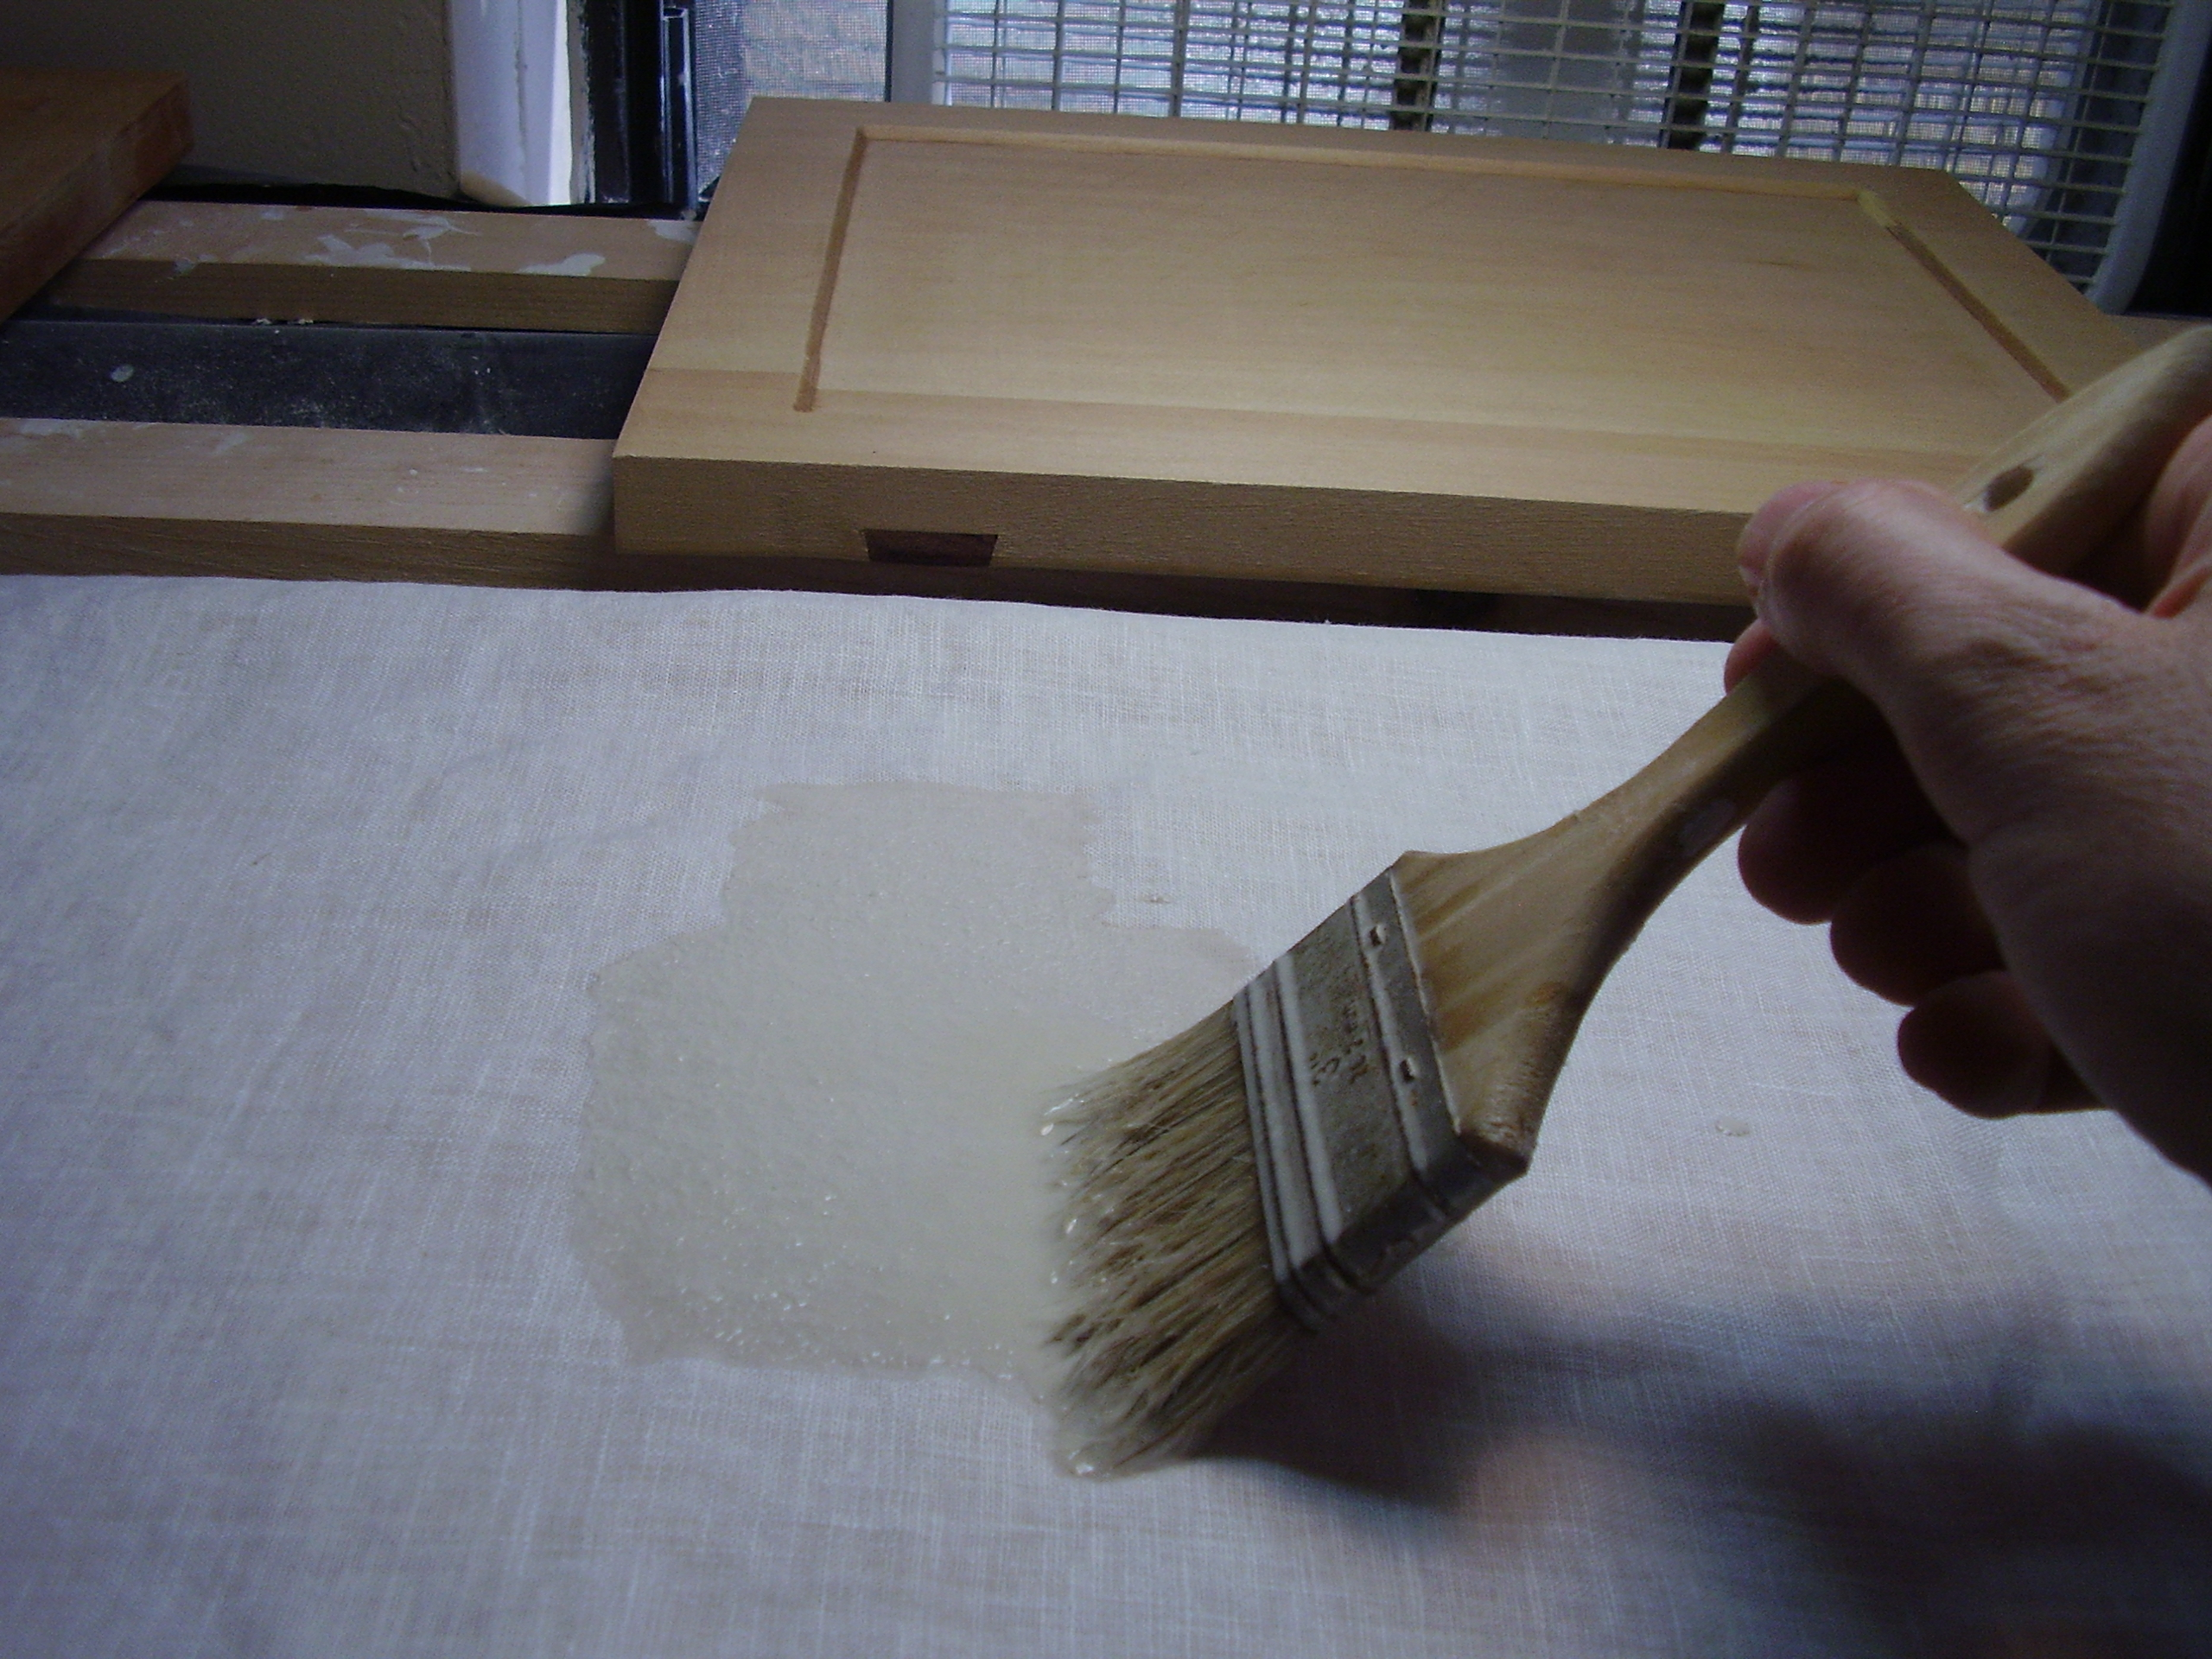 Priming mixture soaked into linen